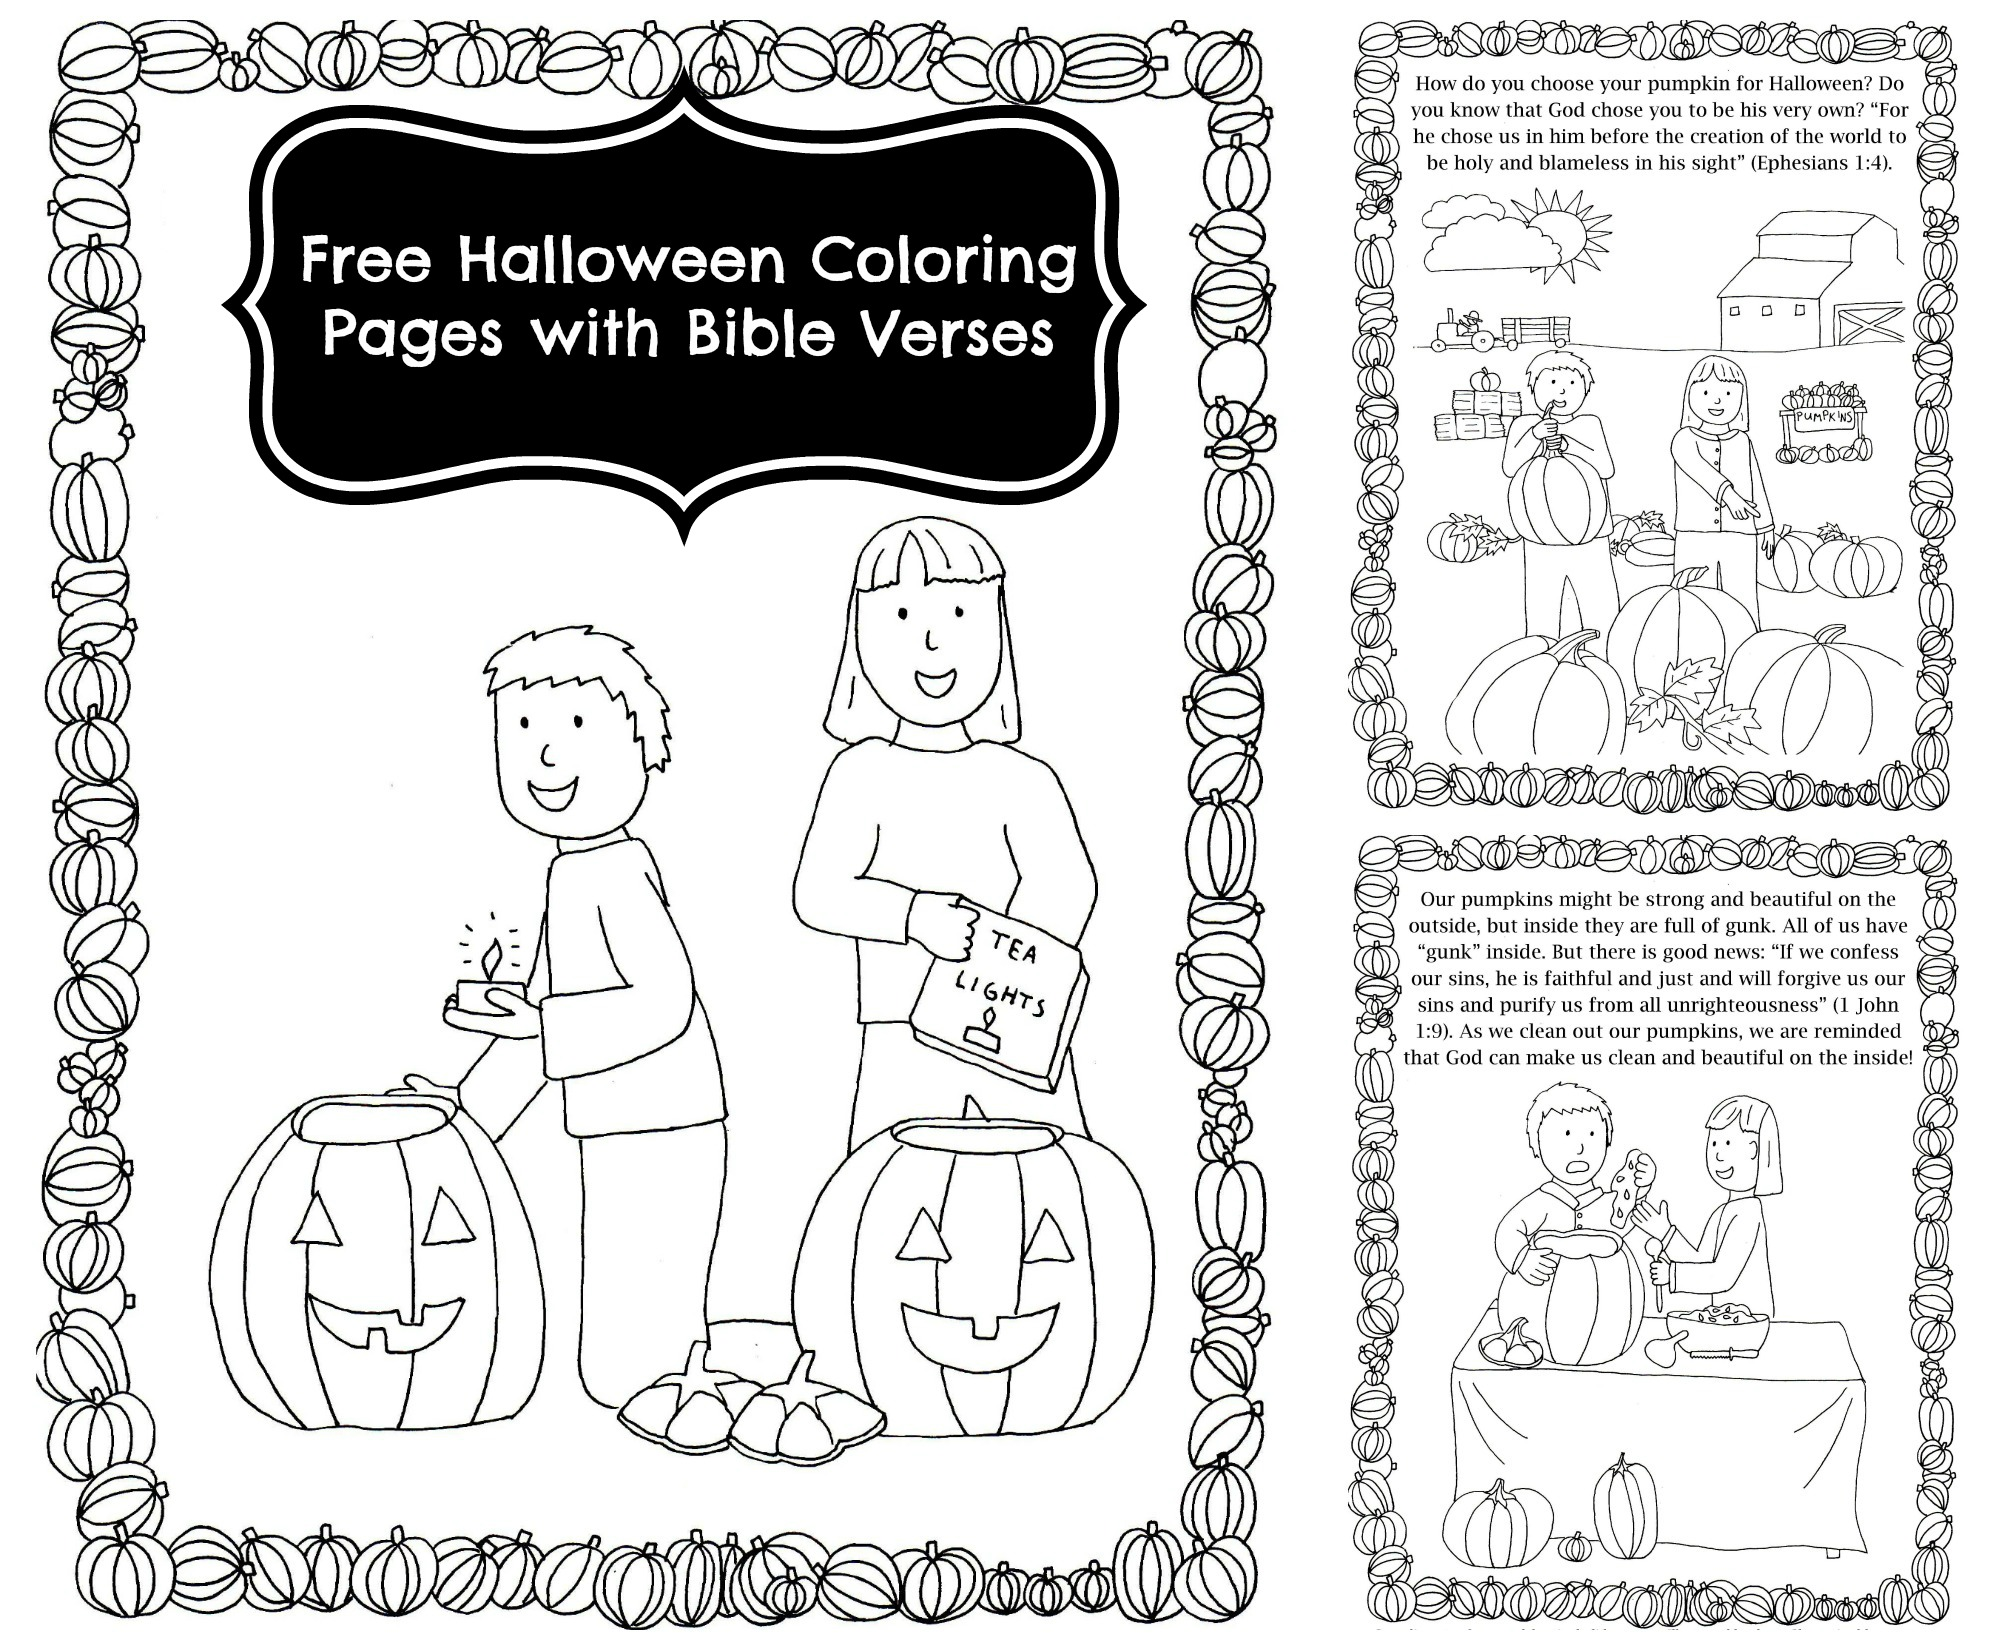 Thanksgiving coloring pages with bible verses - Halloween Coloring Pages Pumpkin Carving Coloring Pages Pumpkin Carving Coloring Pages Pumpkin Carving With Bible Verses